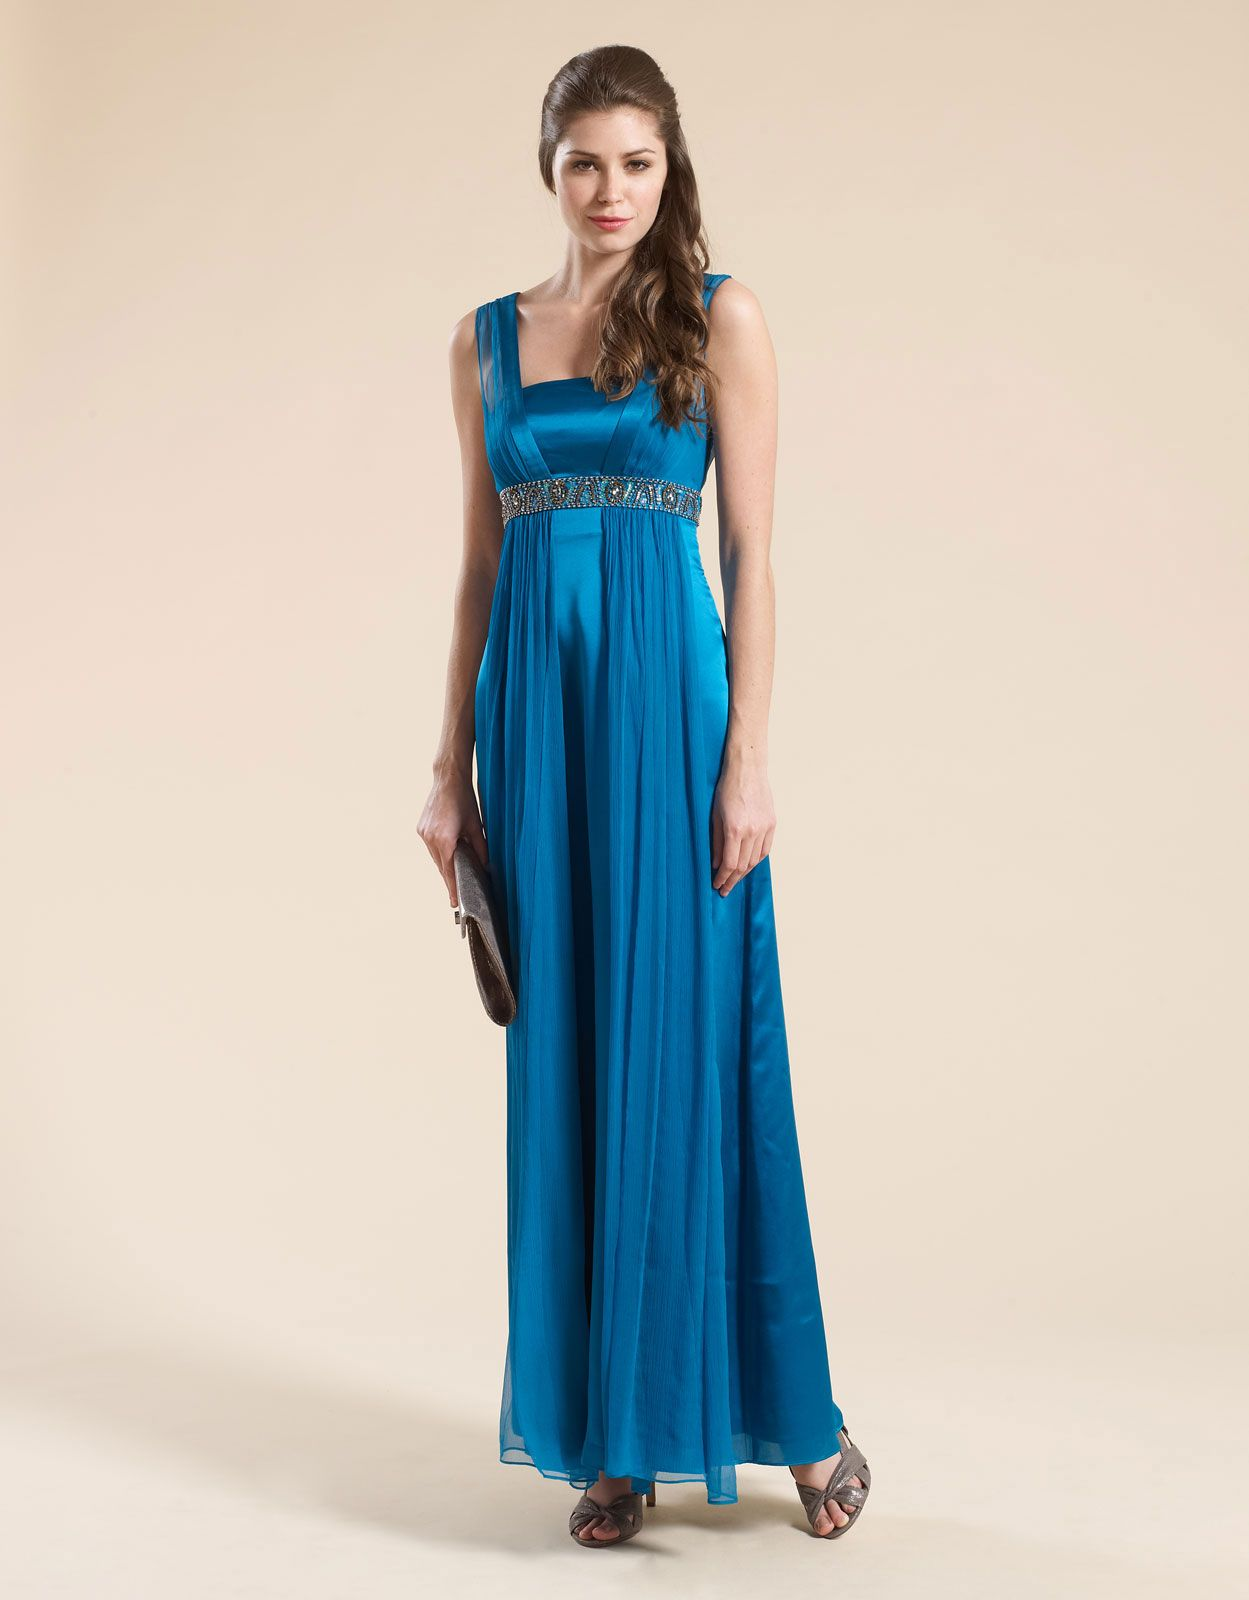 Lorton Embellished Maxi from Monsoon | Gowns Blue | Pinterest ...